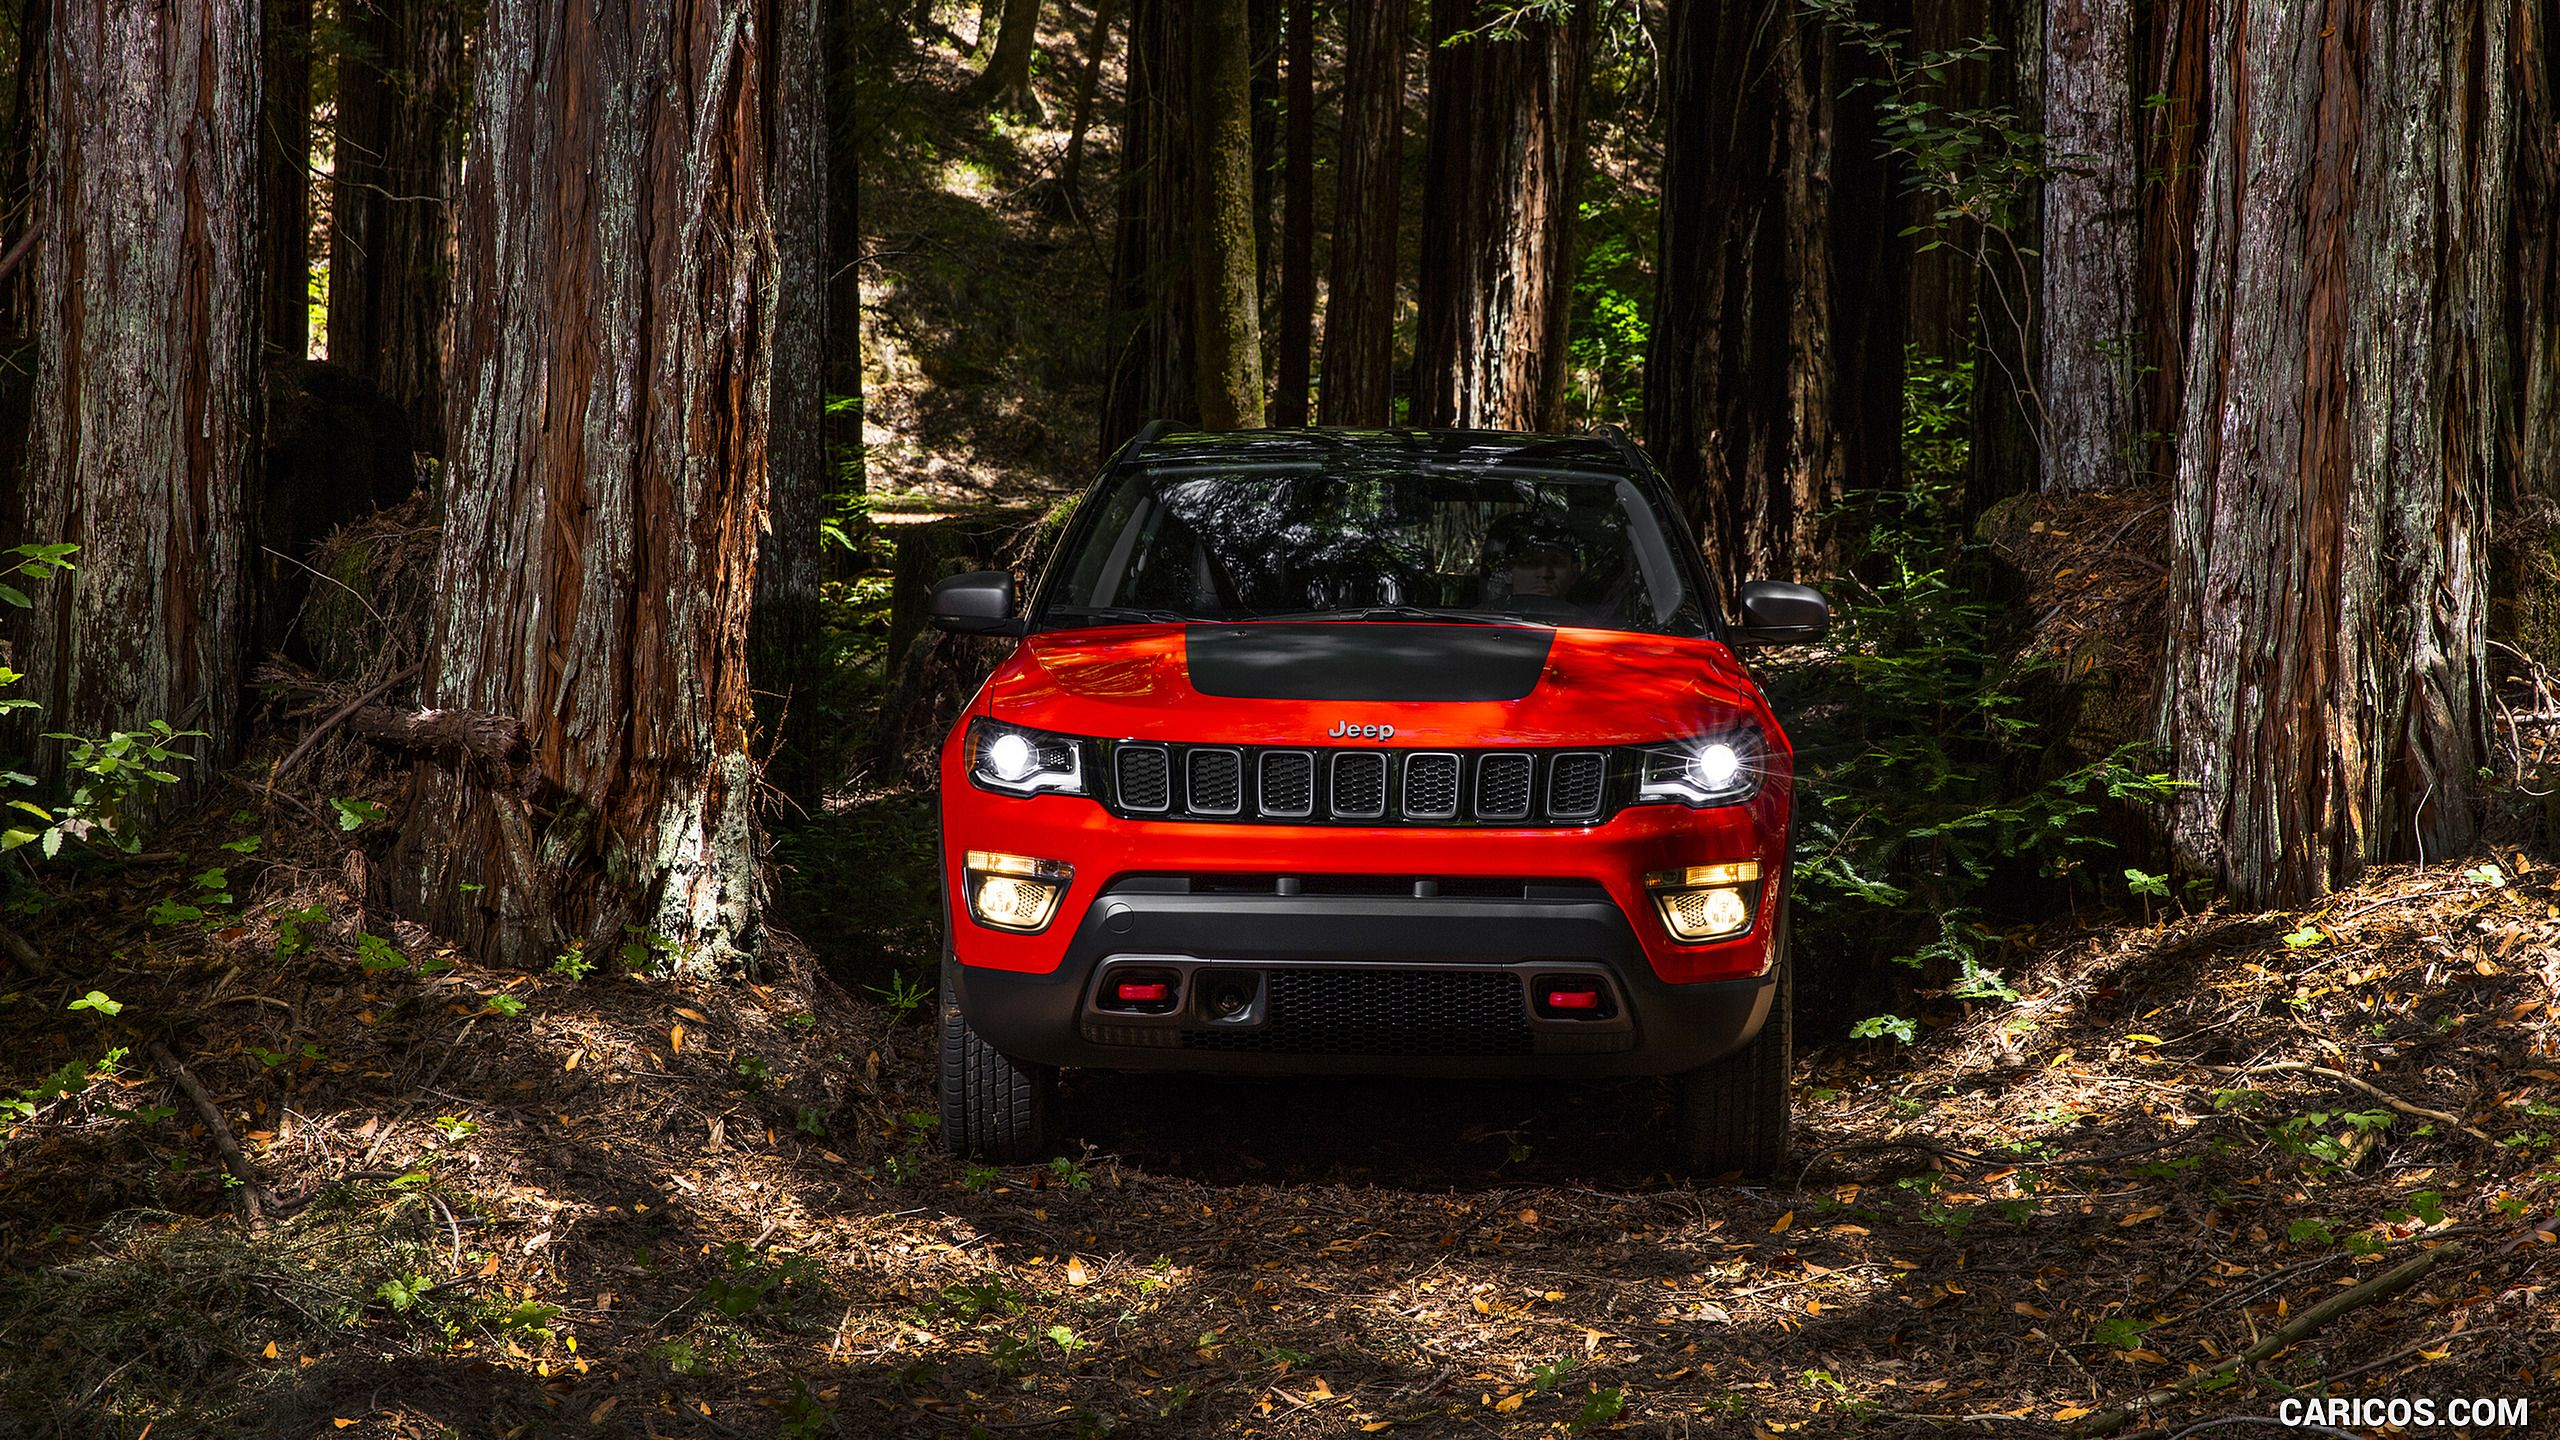 Jeep Compass Wallpapers Top Free Jeep Compass Backgrounds Wallpaperaccess